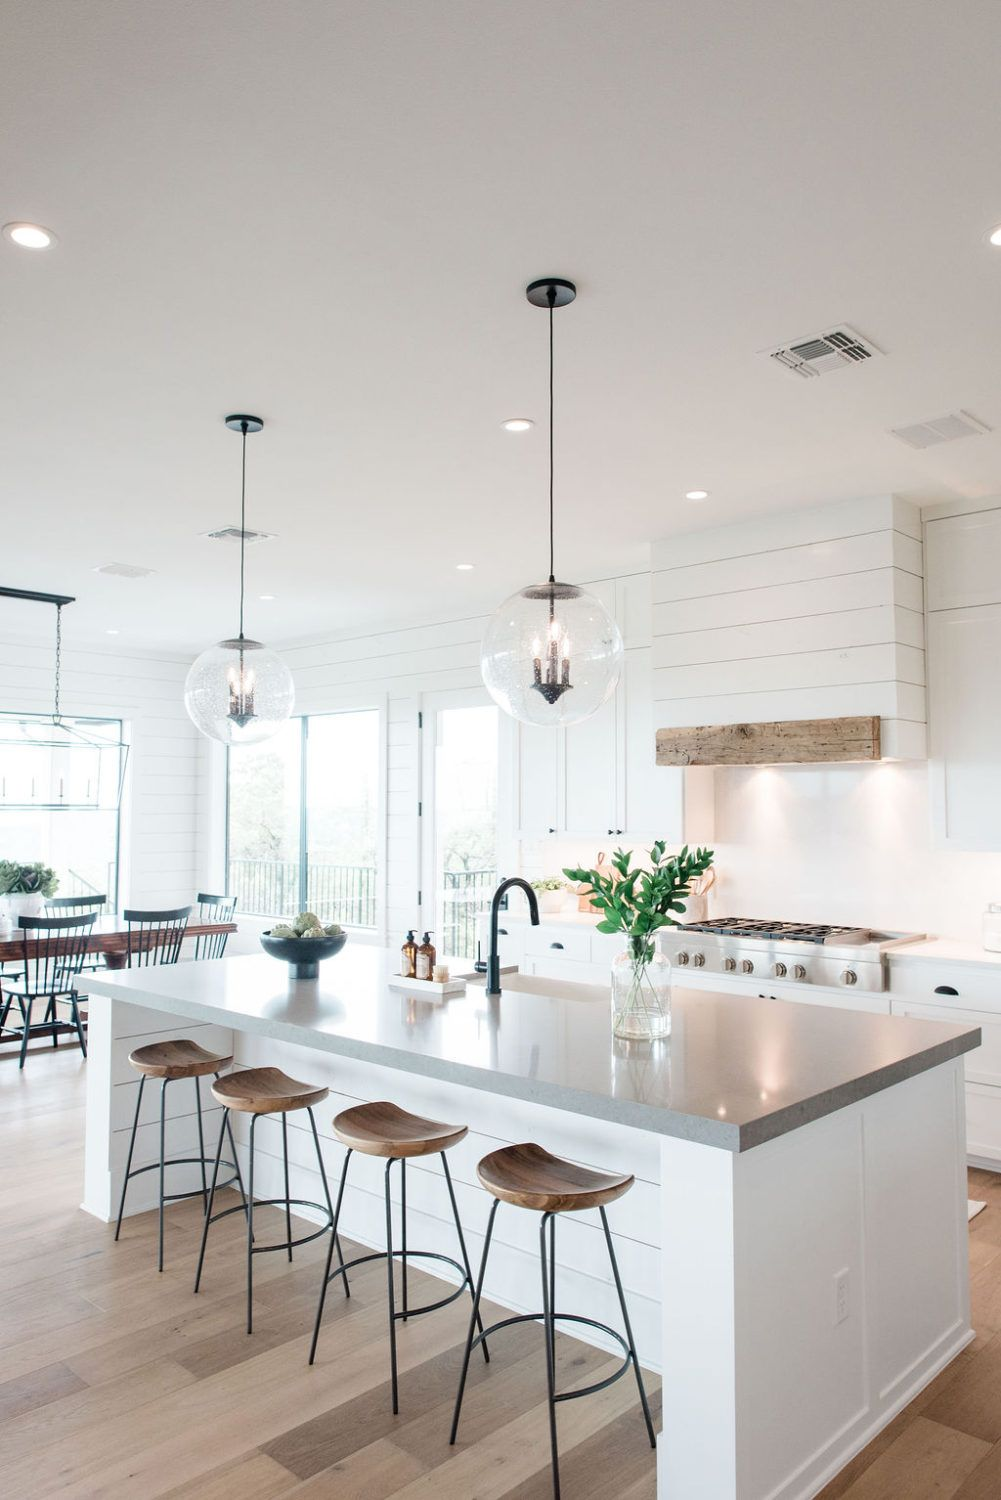 Take A Peek at this Sustainable Green Home That Doesn't Sacrifice Style | lark & linen #home